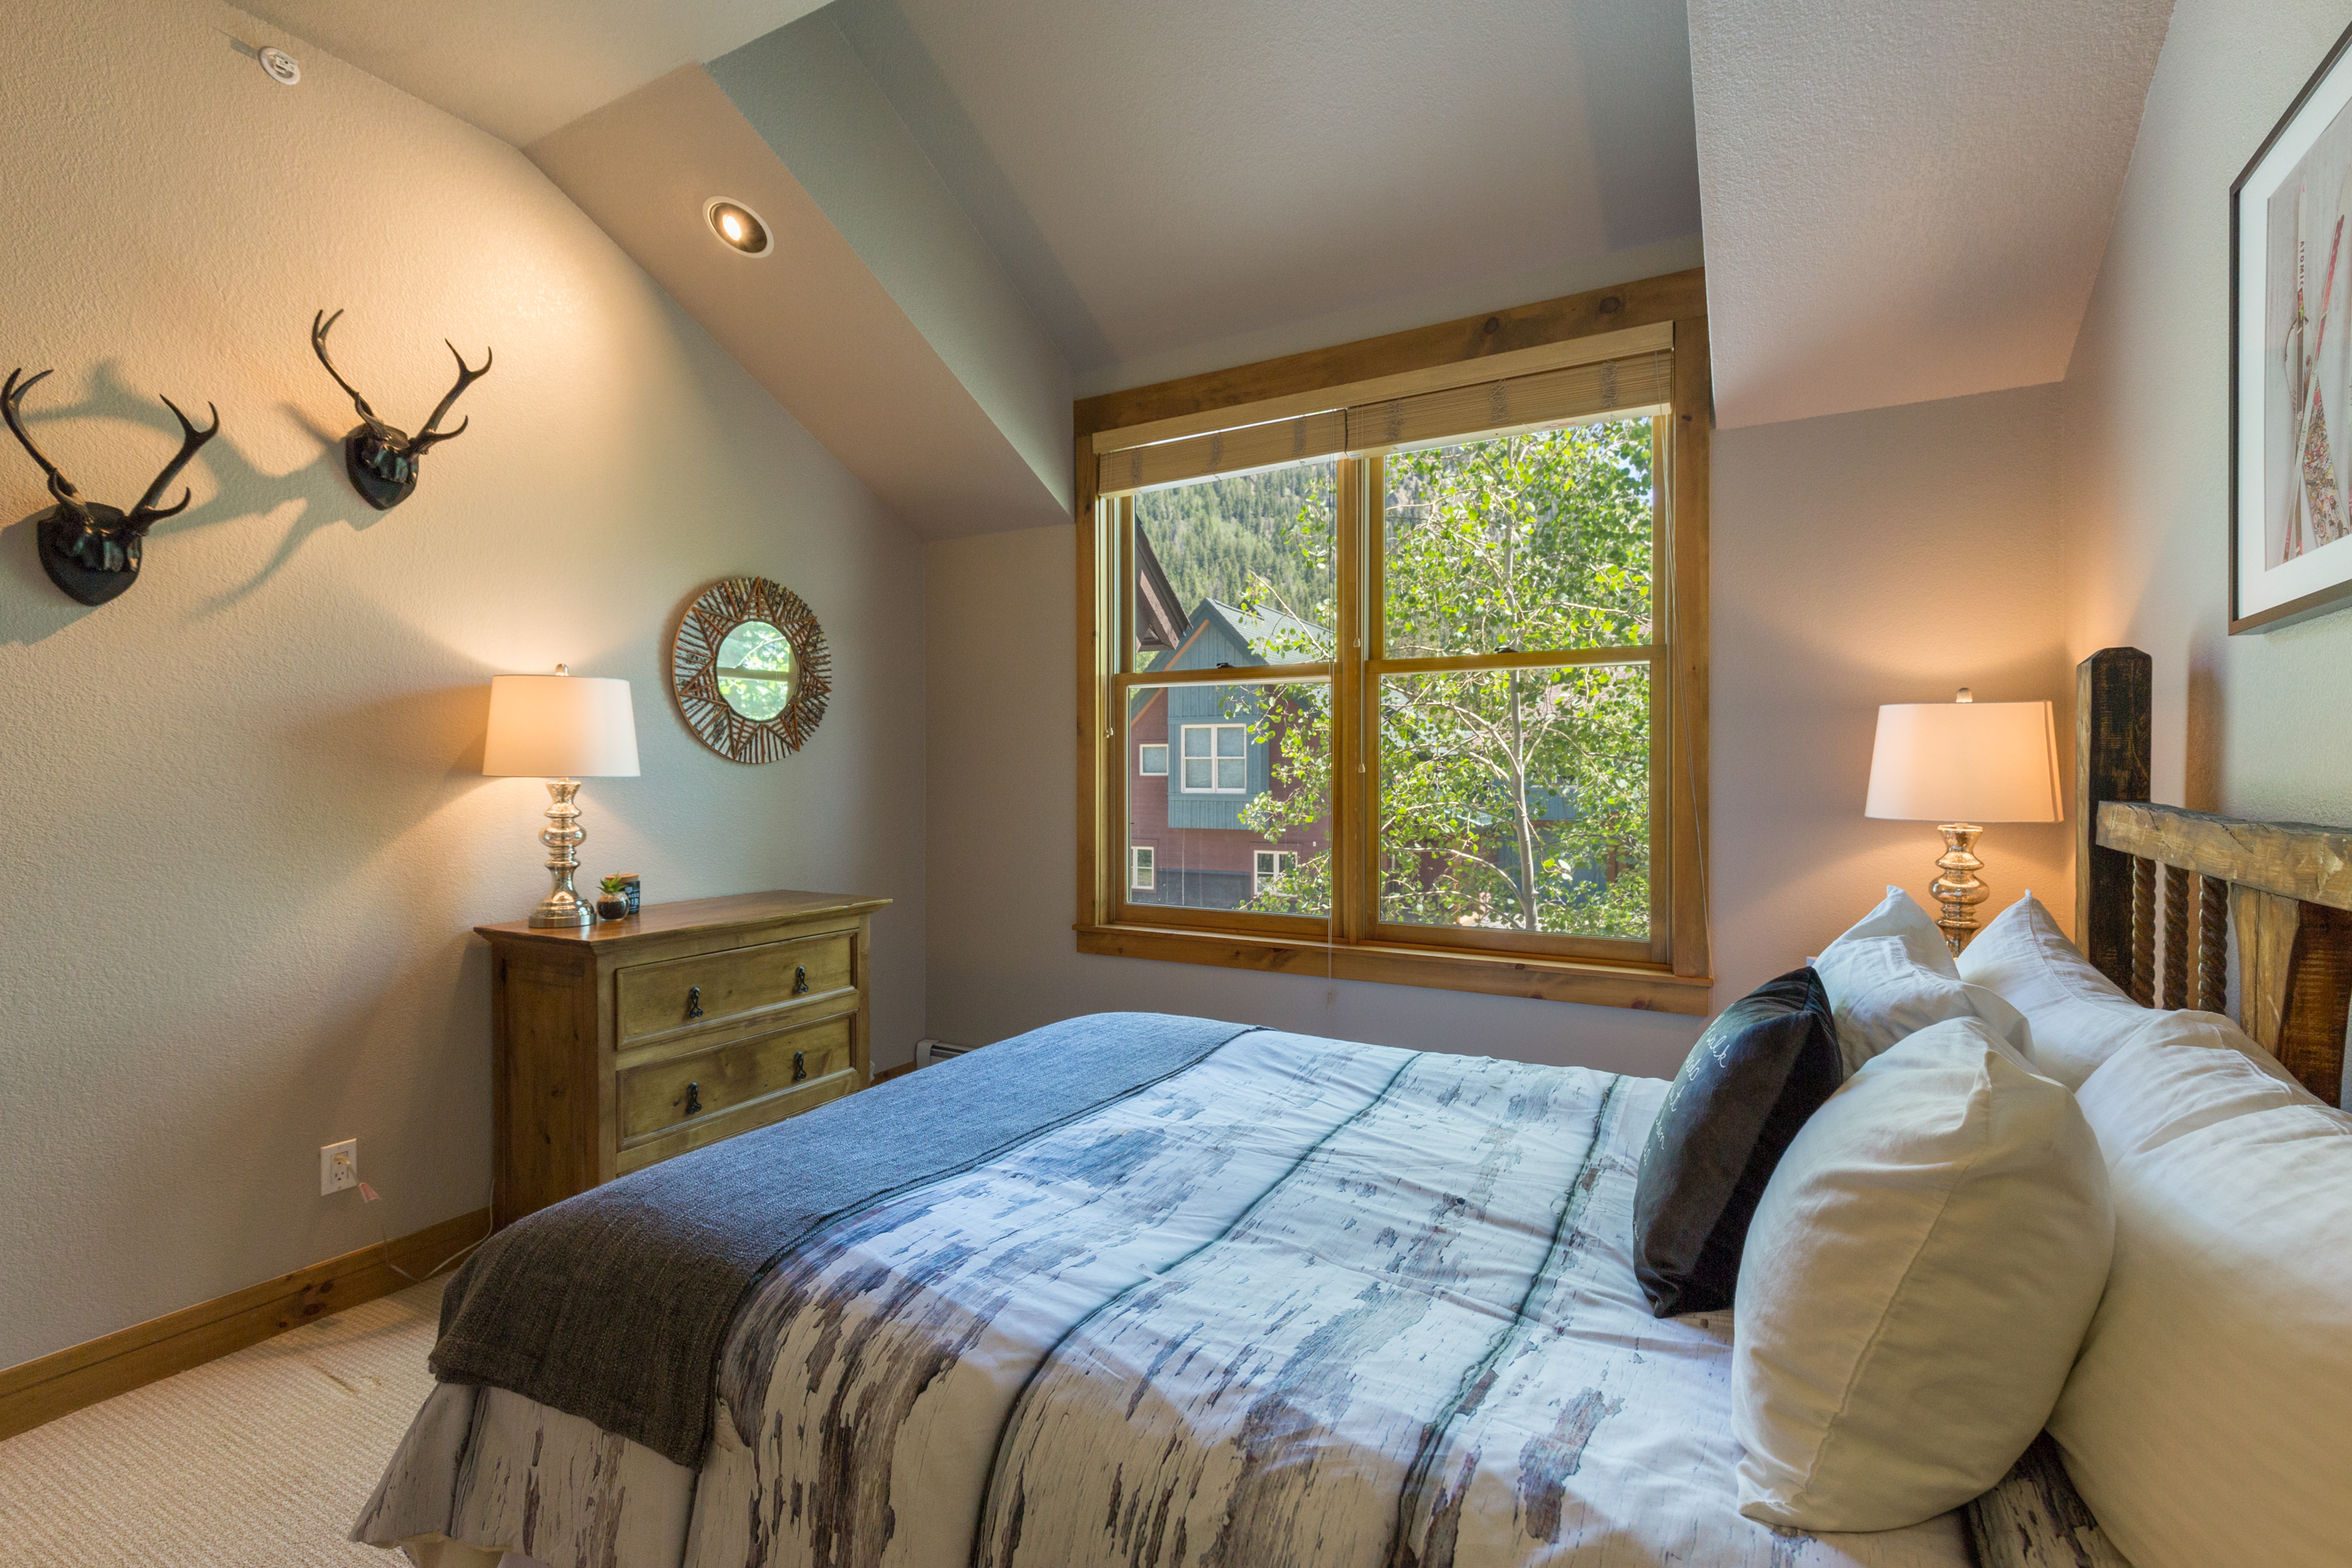 The second guest bedroom features a queen-sized bed with Ivory White Bedding.